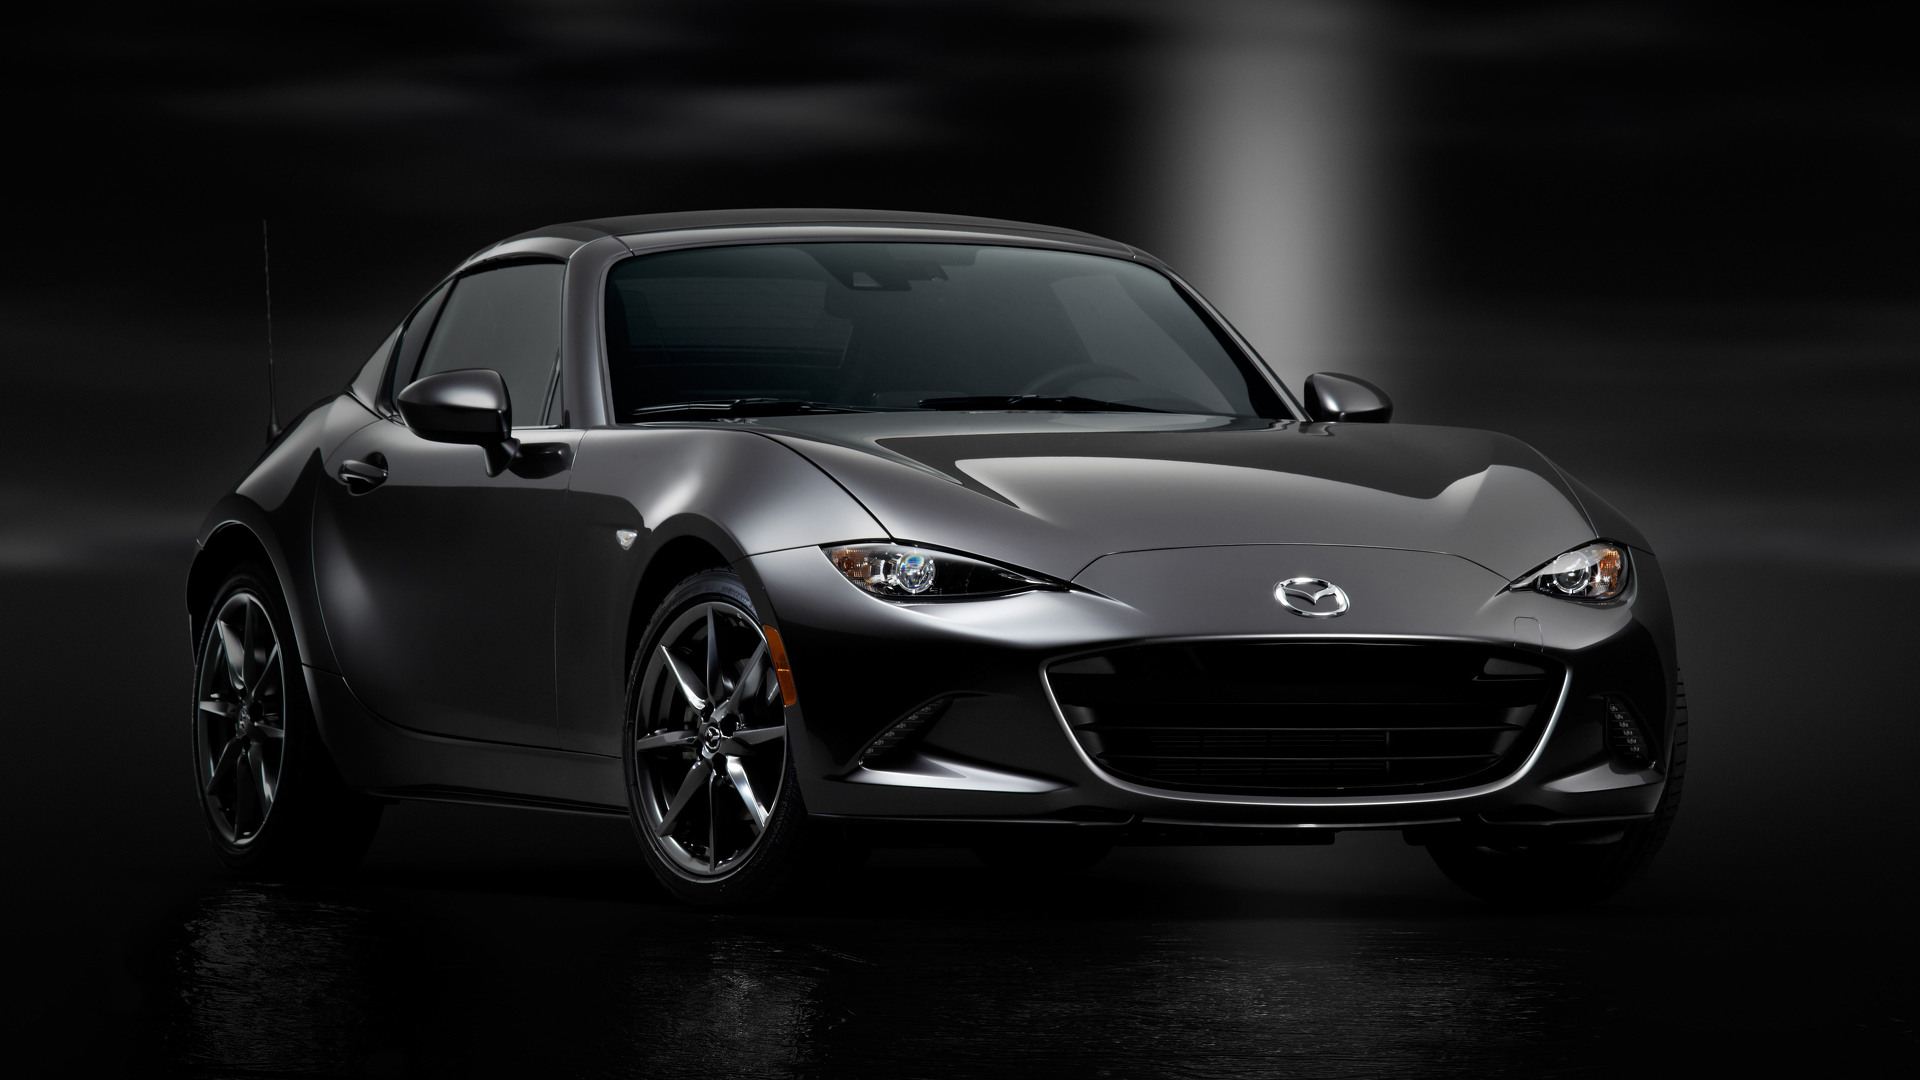 2017 Mx 5 Miata Rf Launch Edition 1 000 Car Allocation Sold Out In First Week